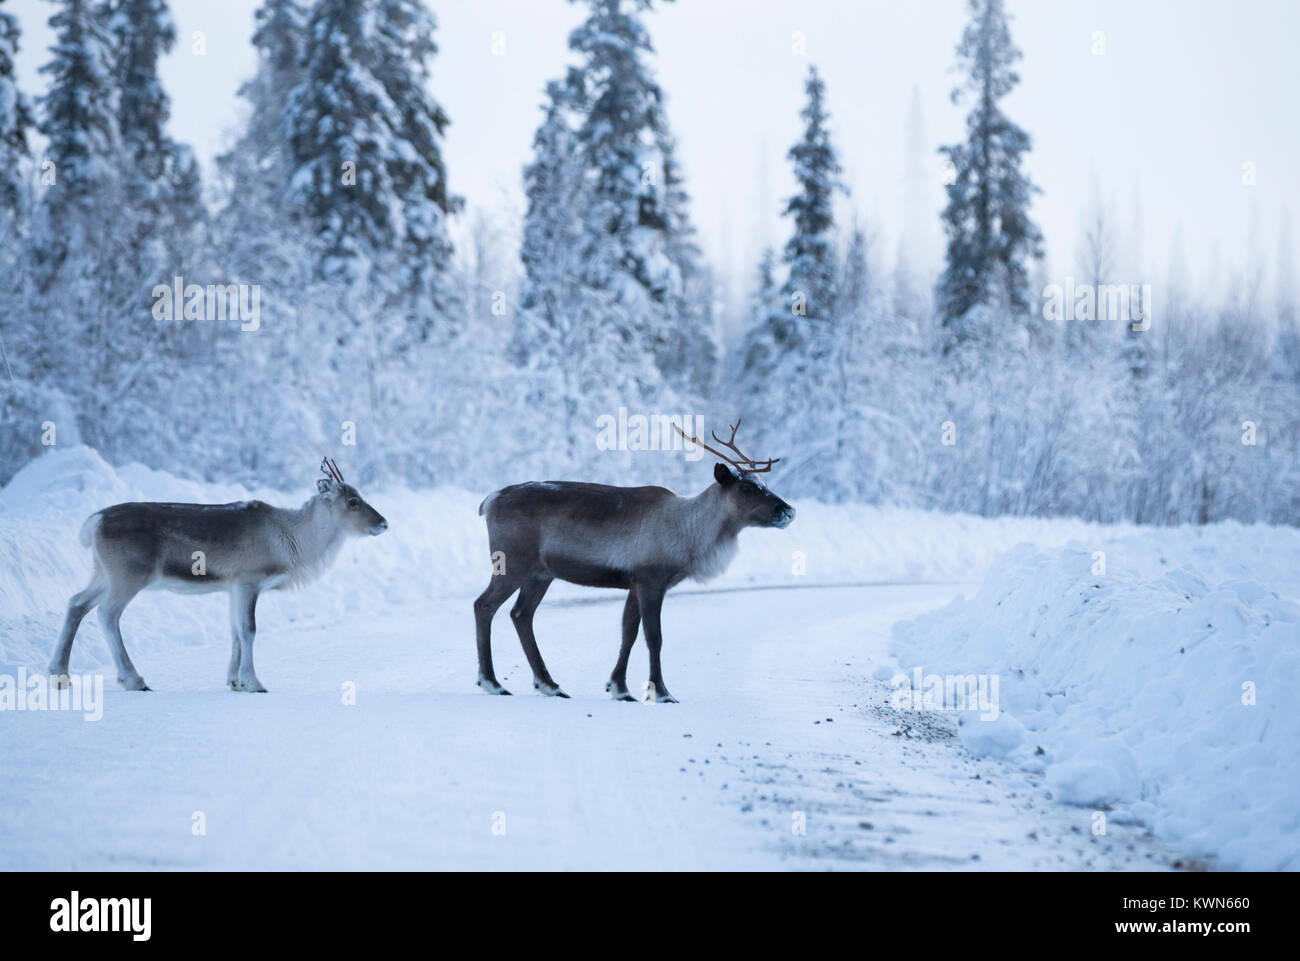 Reindeer couple in the winter environment - Stock Image